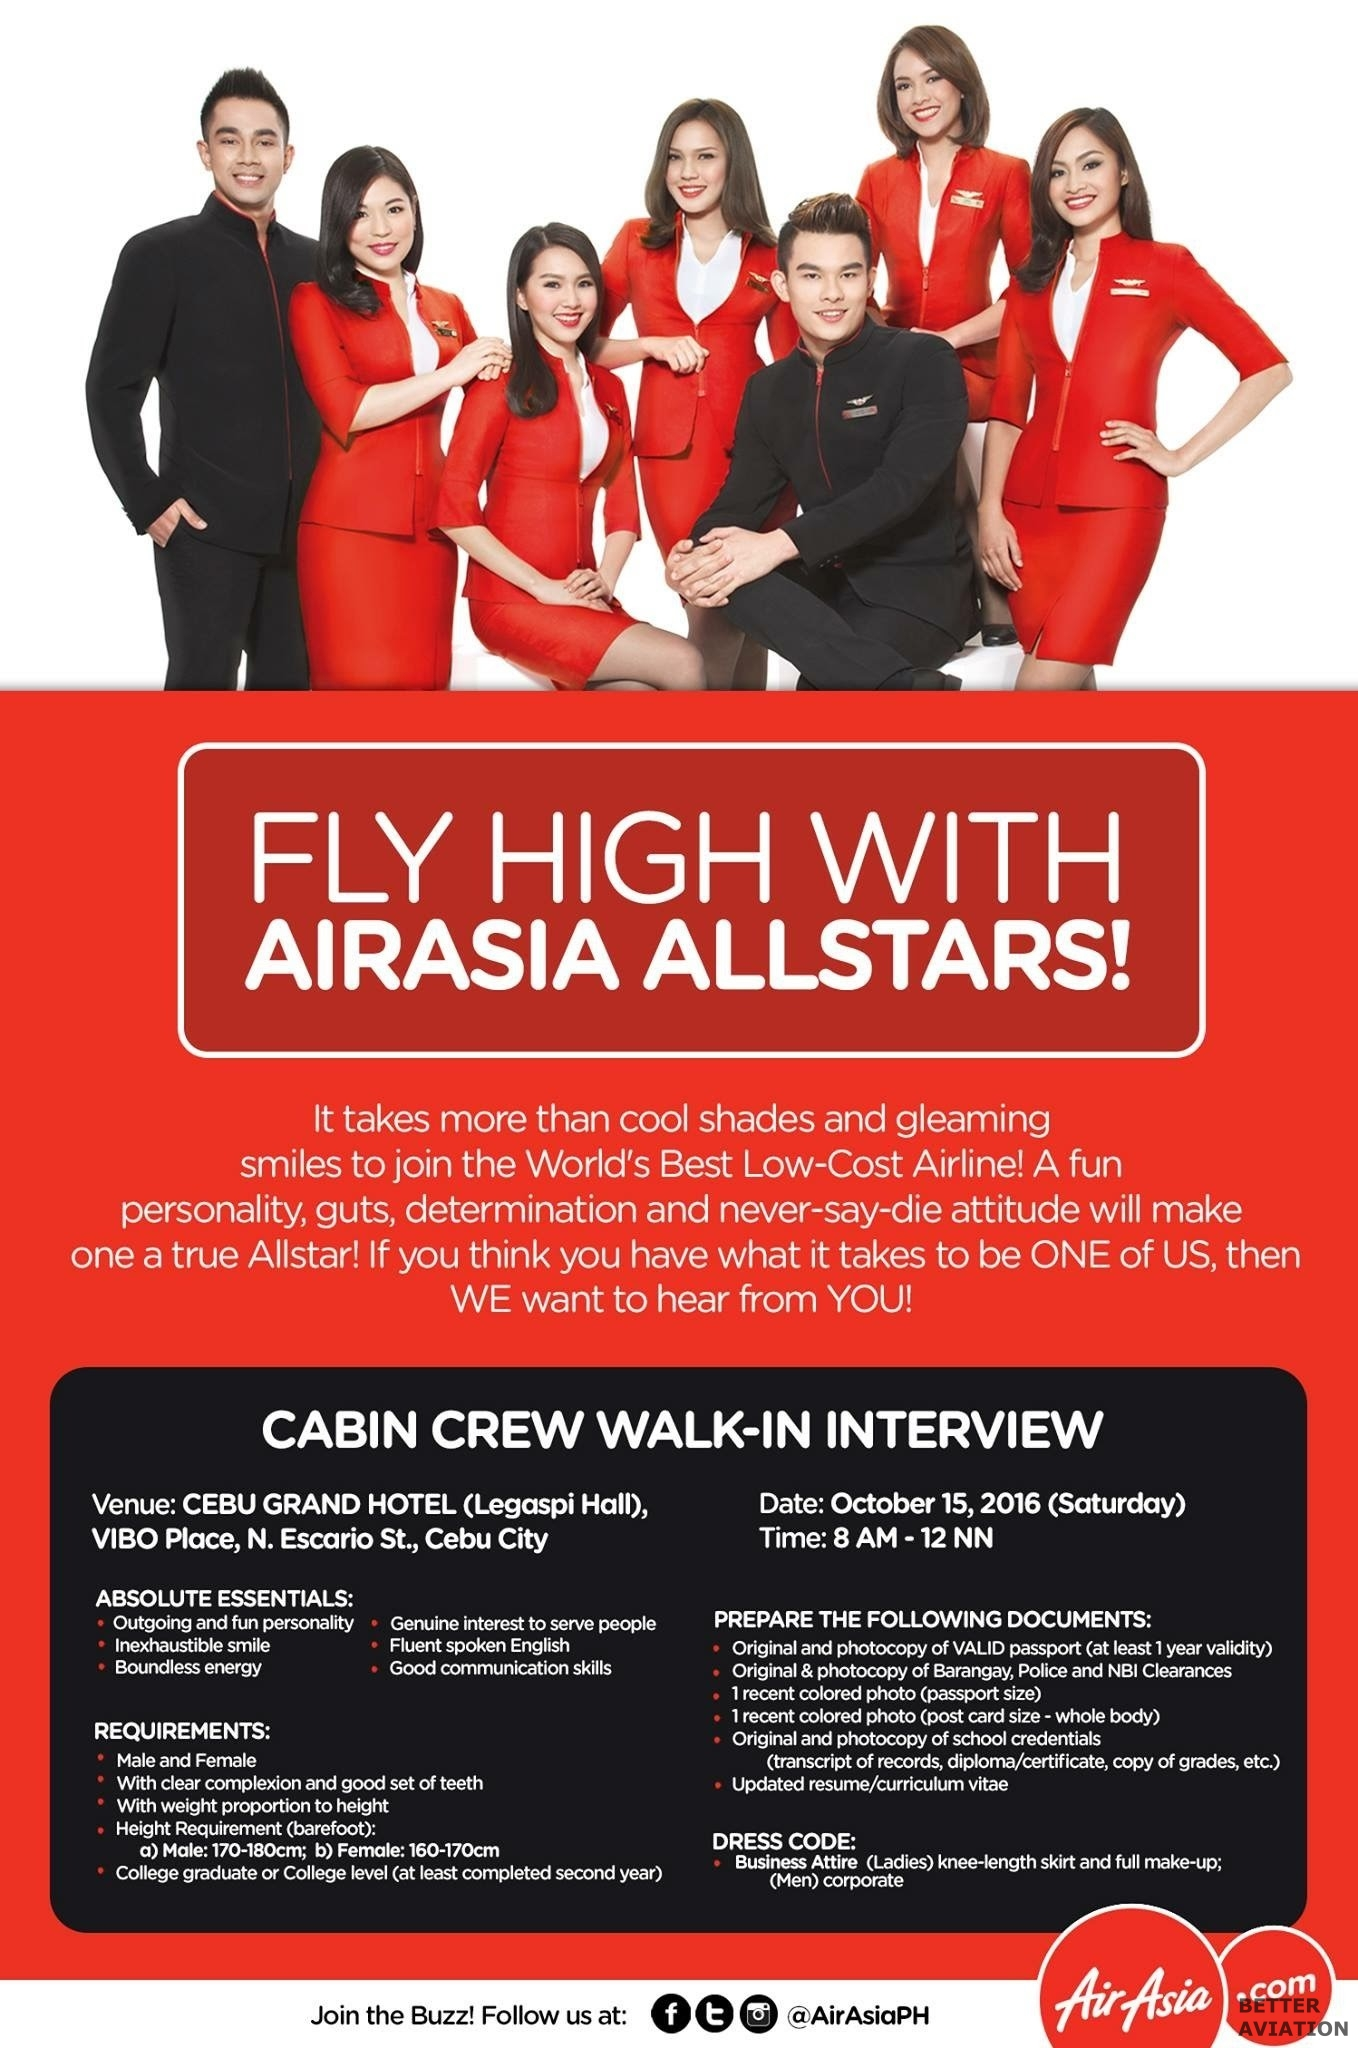 AirAsia Philippines Cabin Crew October 2016